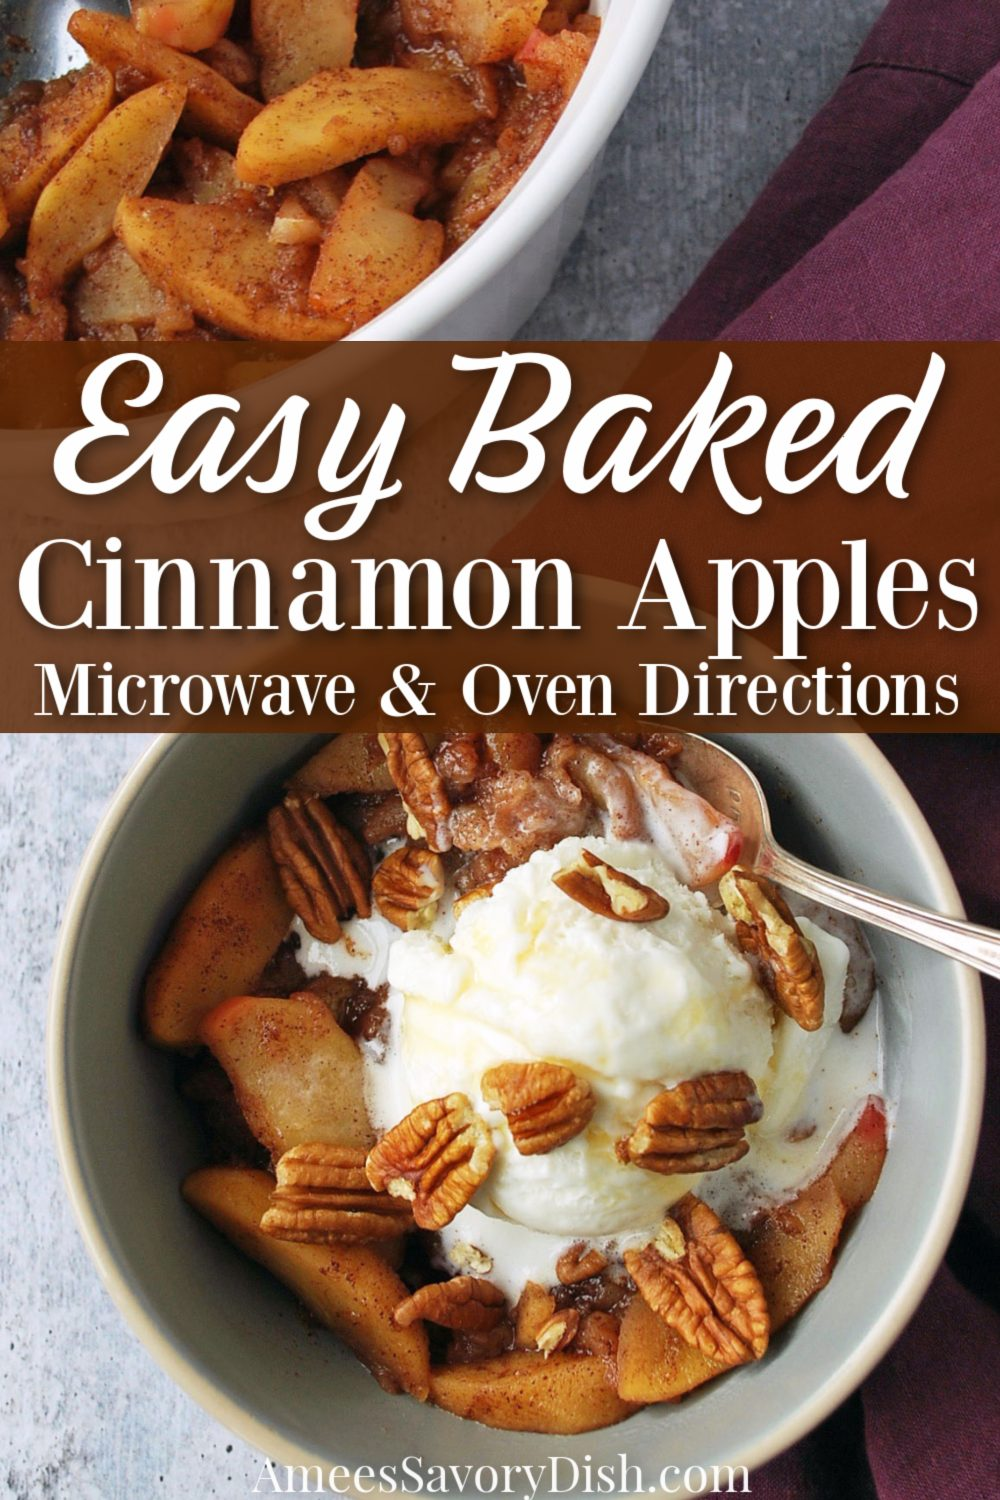 An easy recipe for cinnamon baked apples that can be made in the oven or the microwave. They are the perfect healthy fall dessert! via @Ameessavorydish